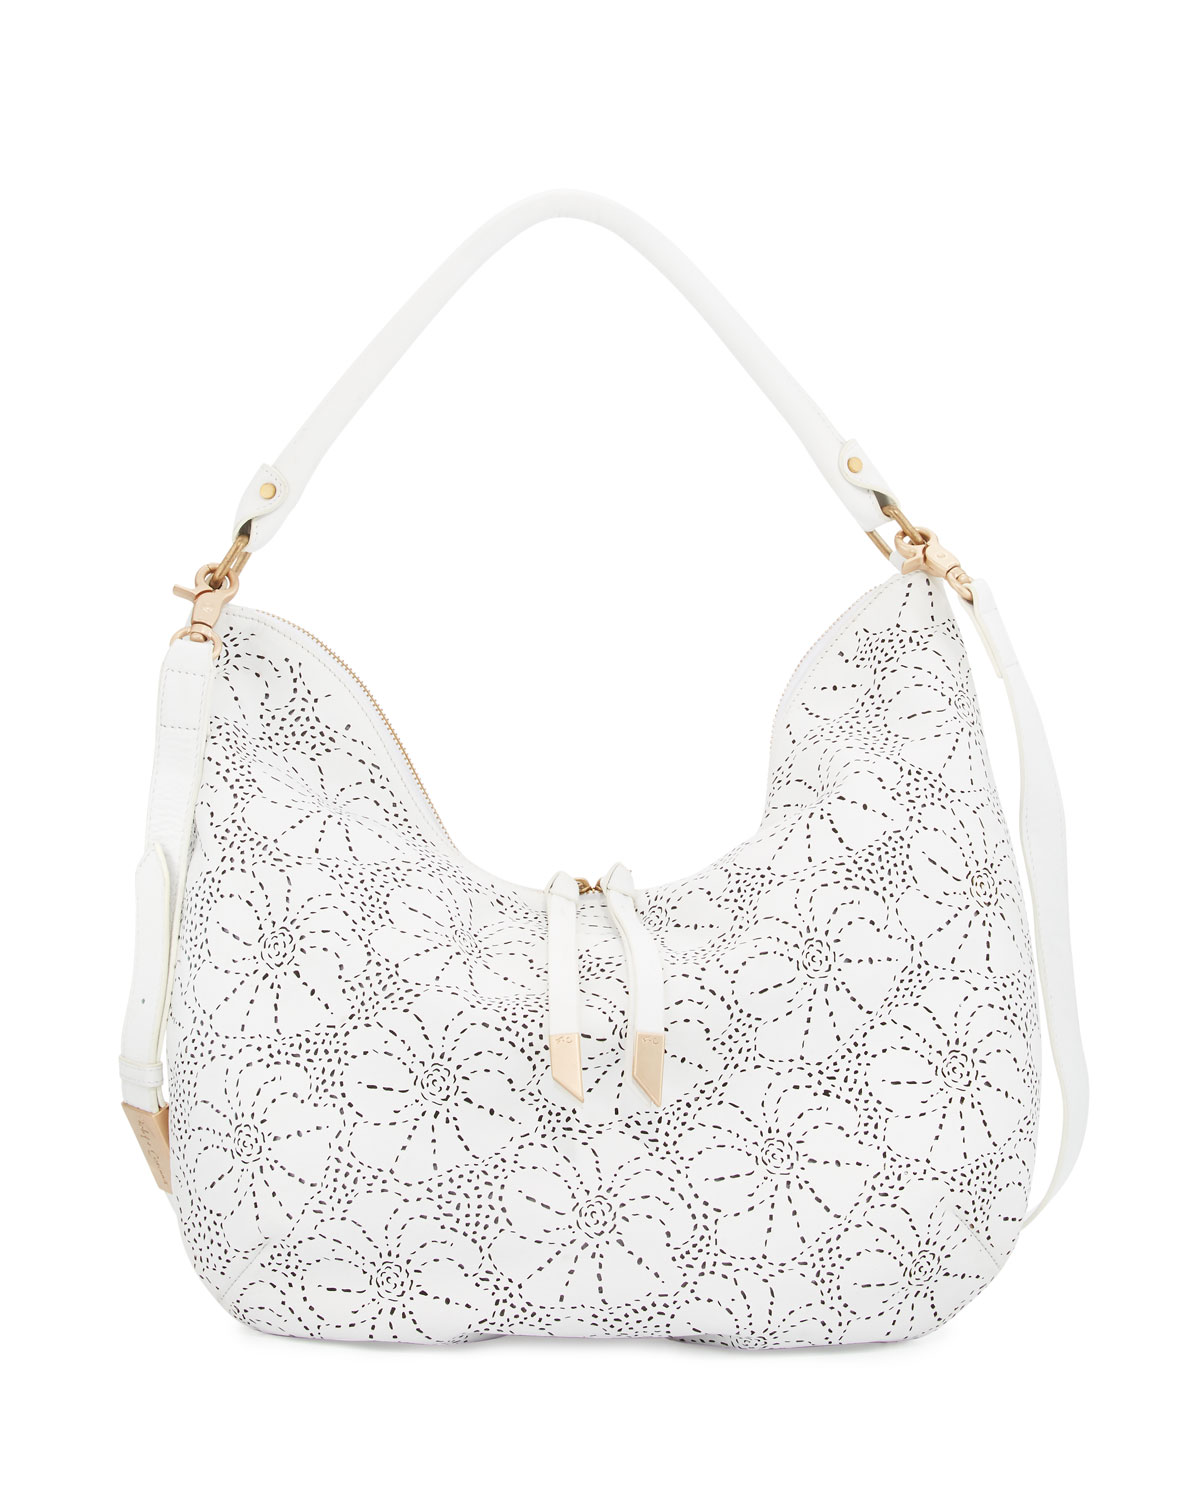 Mia Perforated Leather Hobo Bag, White